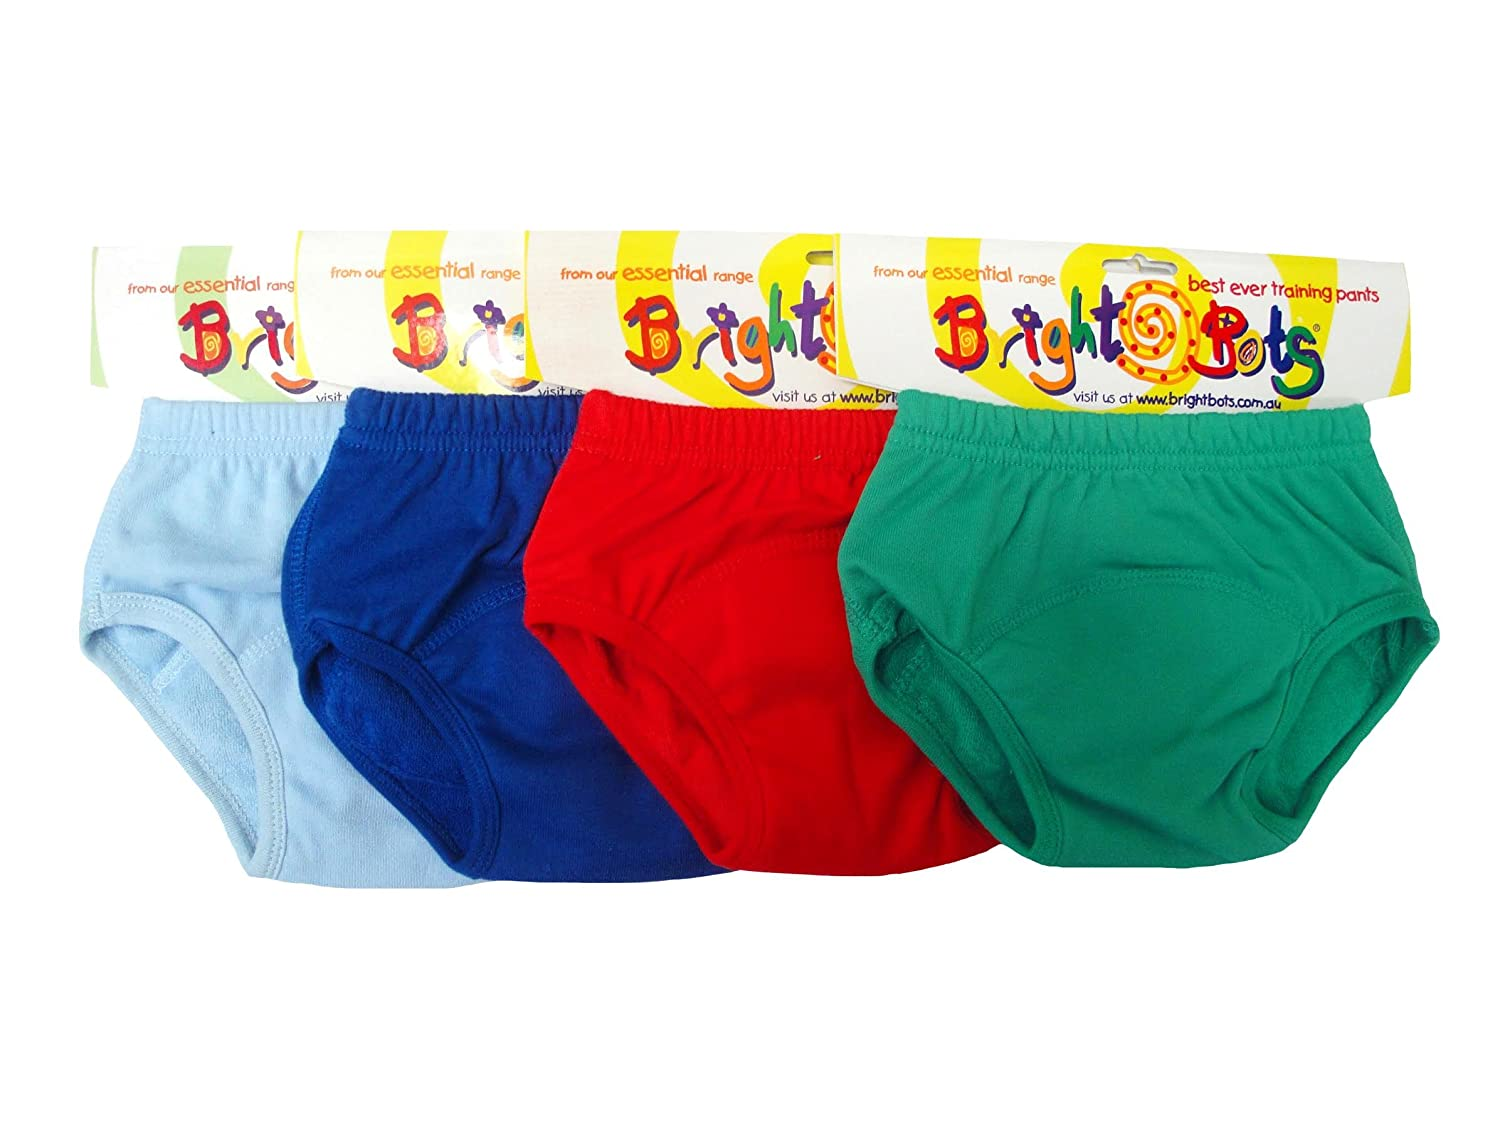 Bright Bots Washable Potty Training Pants Culotte d'apprentissage 4pk Medium with PUL Lining - Garcon (approx 18-24mois) 2AAETRA-4MB